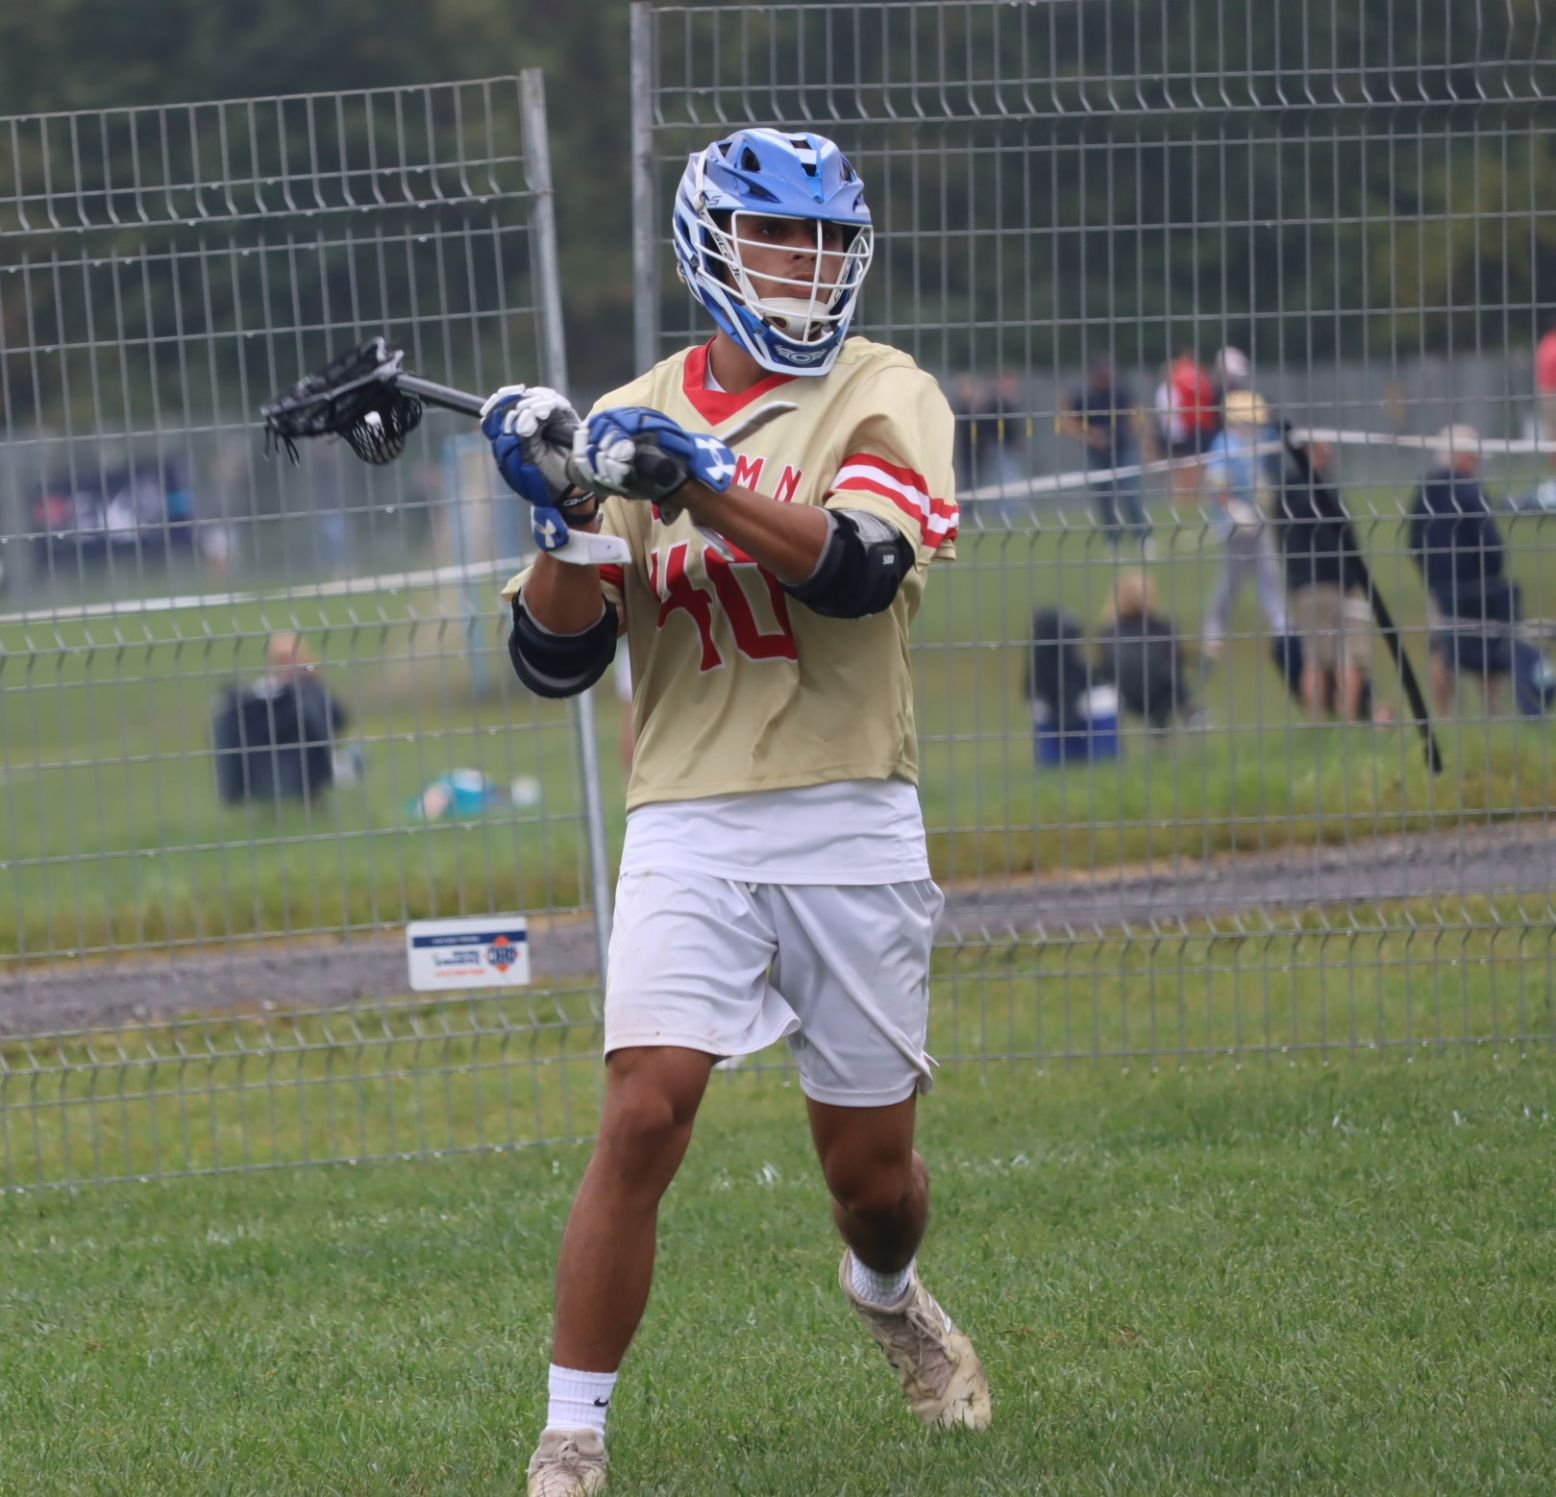 Matteo Corsi, 2021 Standout Lacrosse Player at the National All Star Games